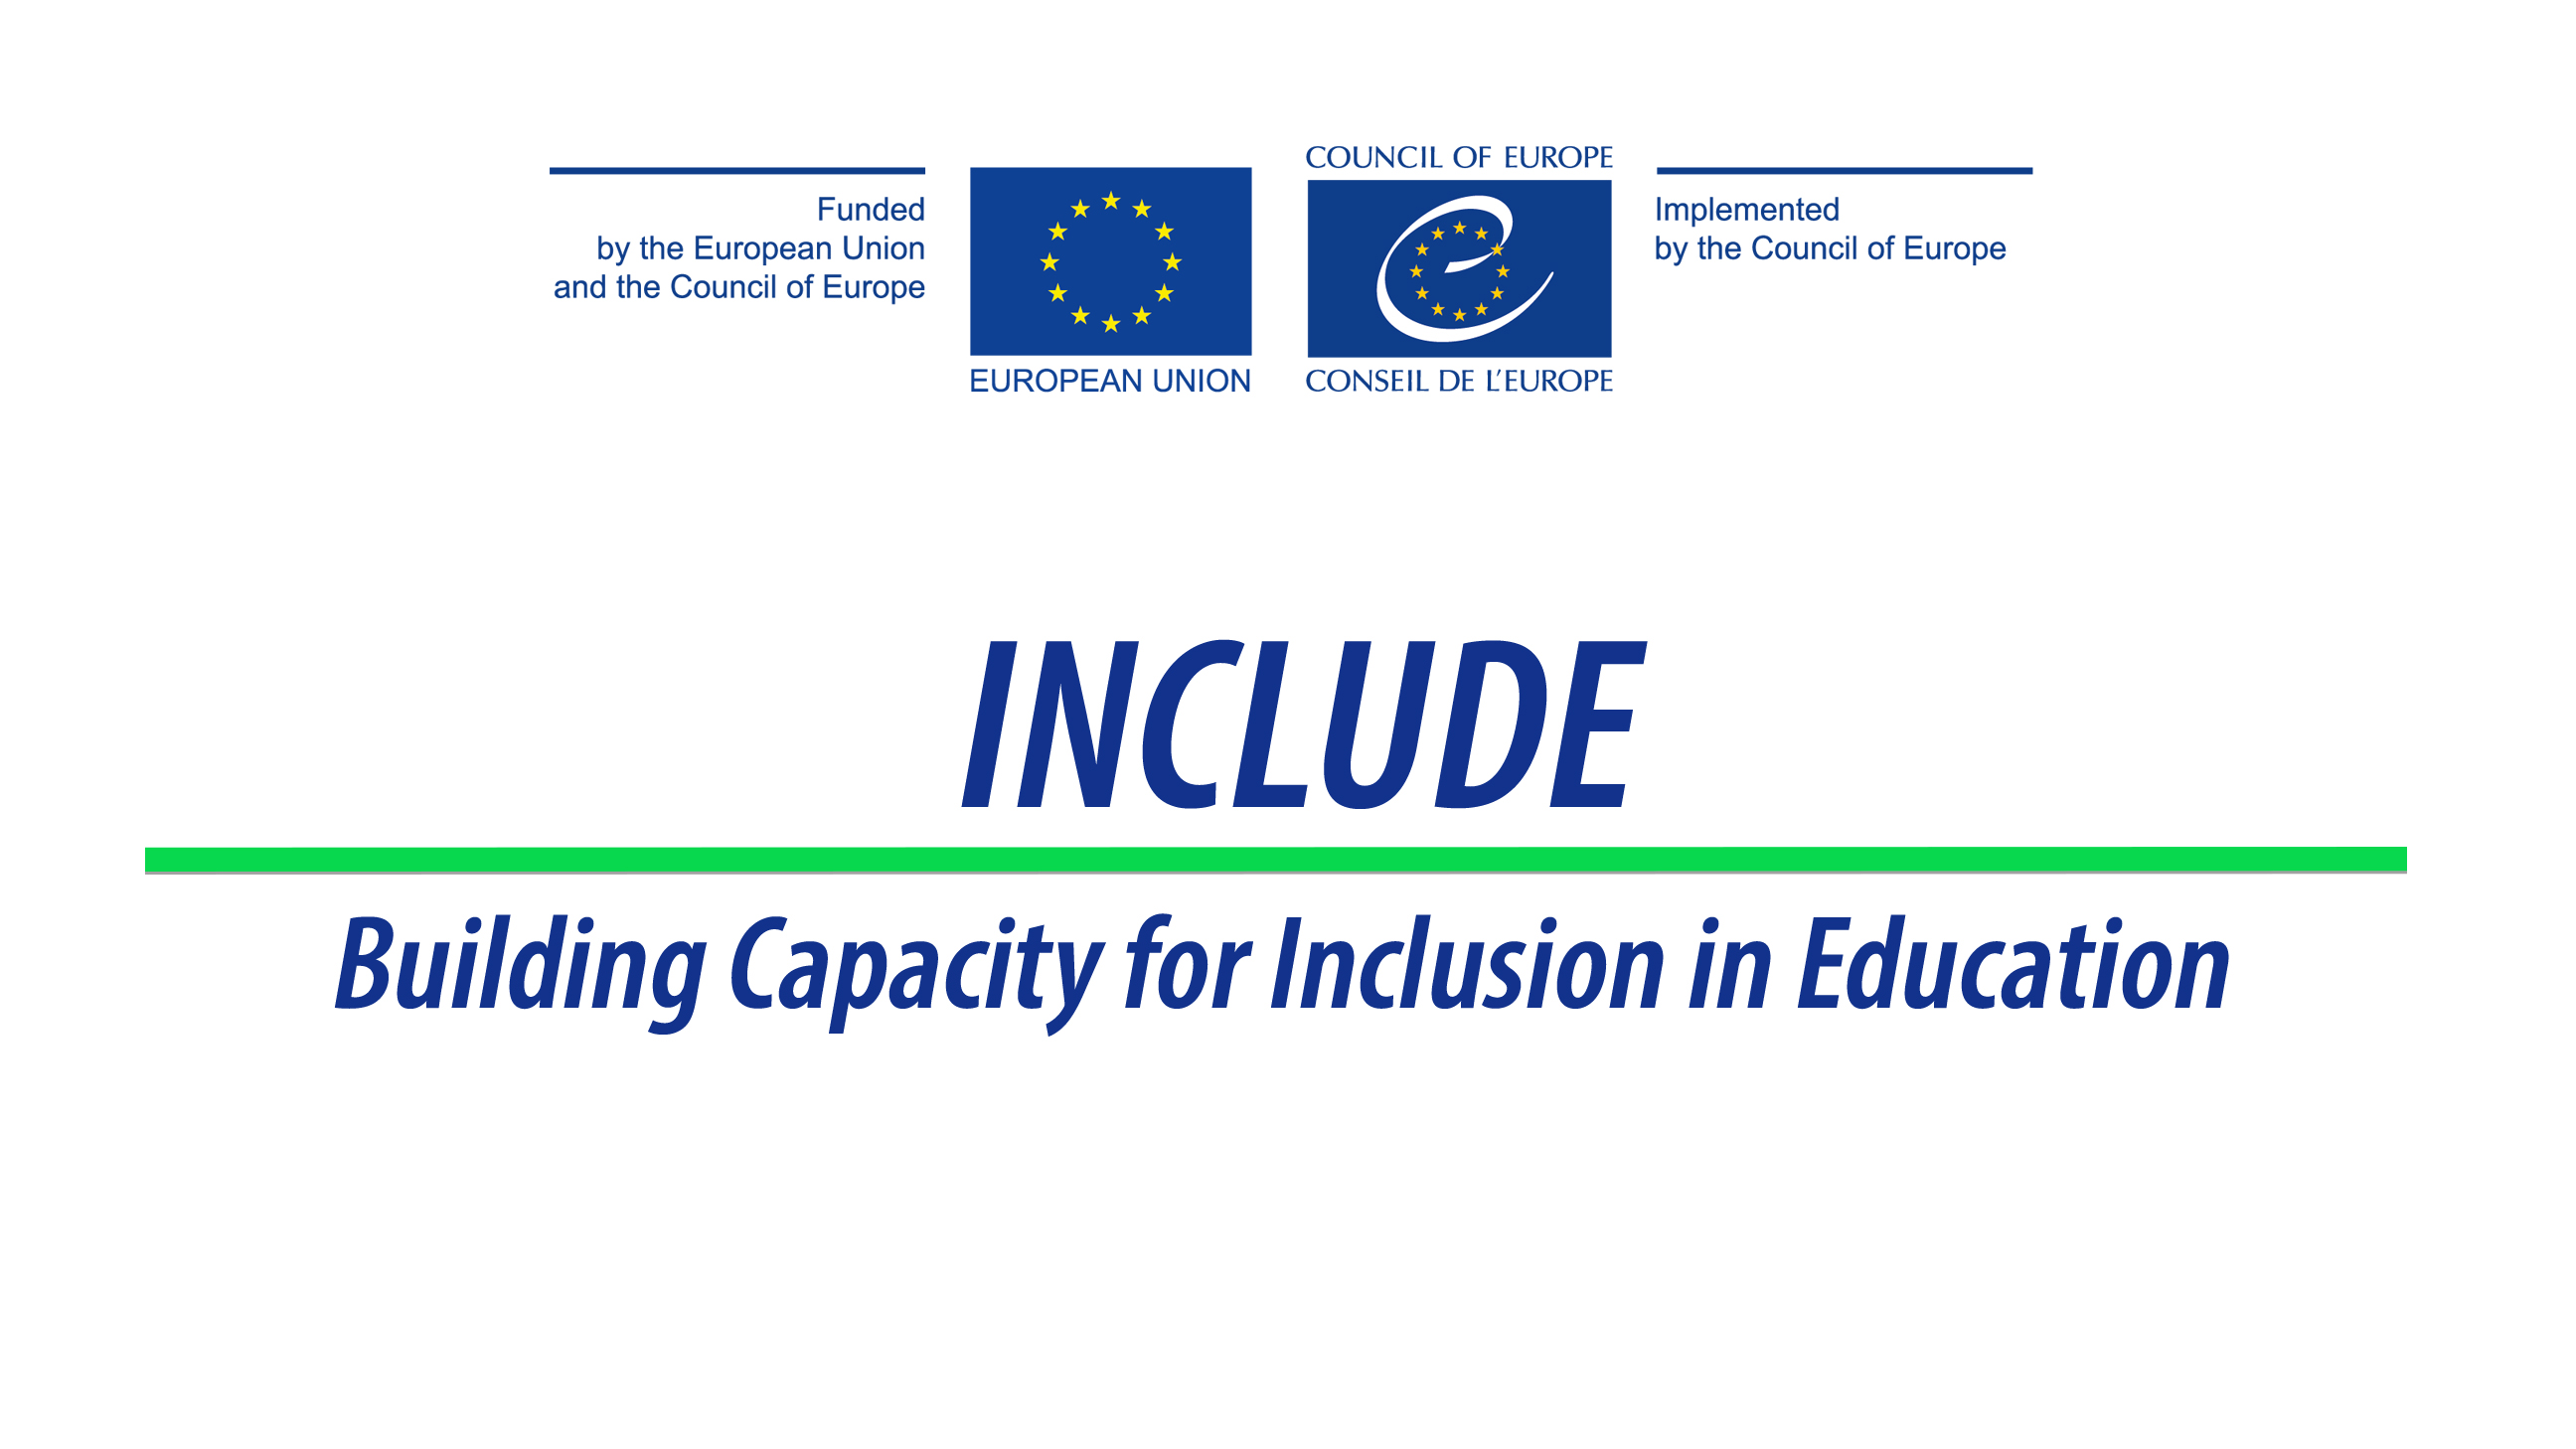 INCLUDE - Building Capacity for Inclusion in Education